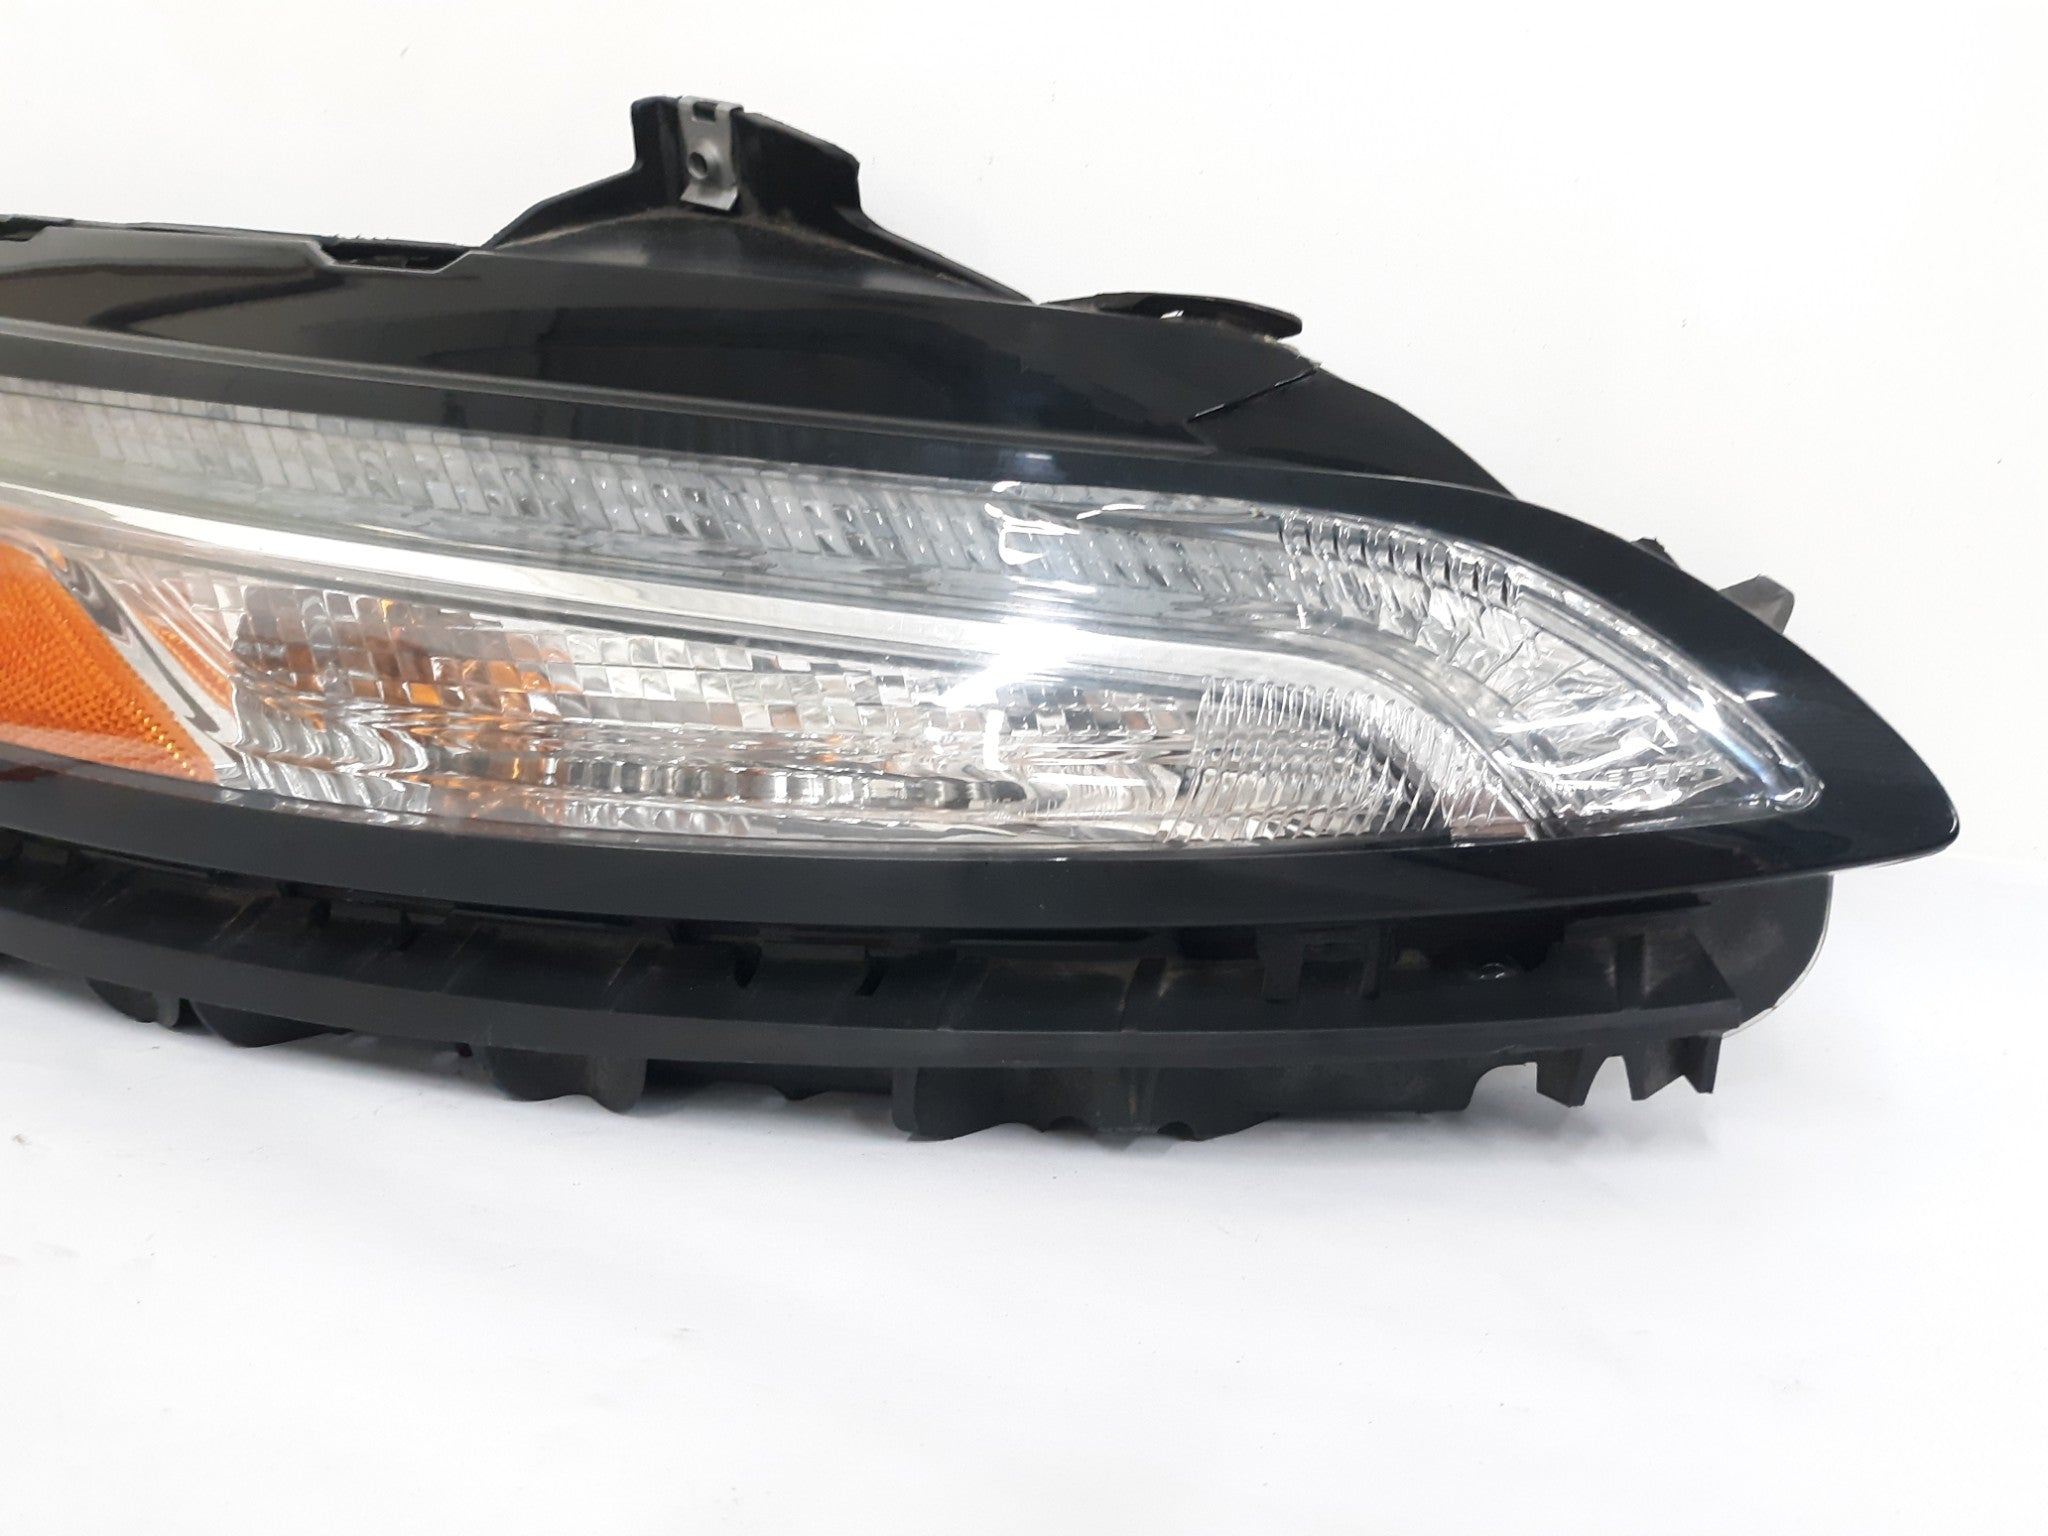 2014 - 2016 JEEP CHEROKEE HEADLIGHT RIGHT PASSENGER DAYTIME LED 68157102AQ OEM - Click Receive Auto Parts